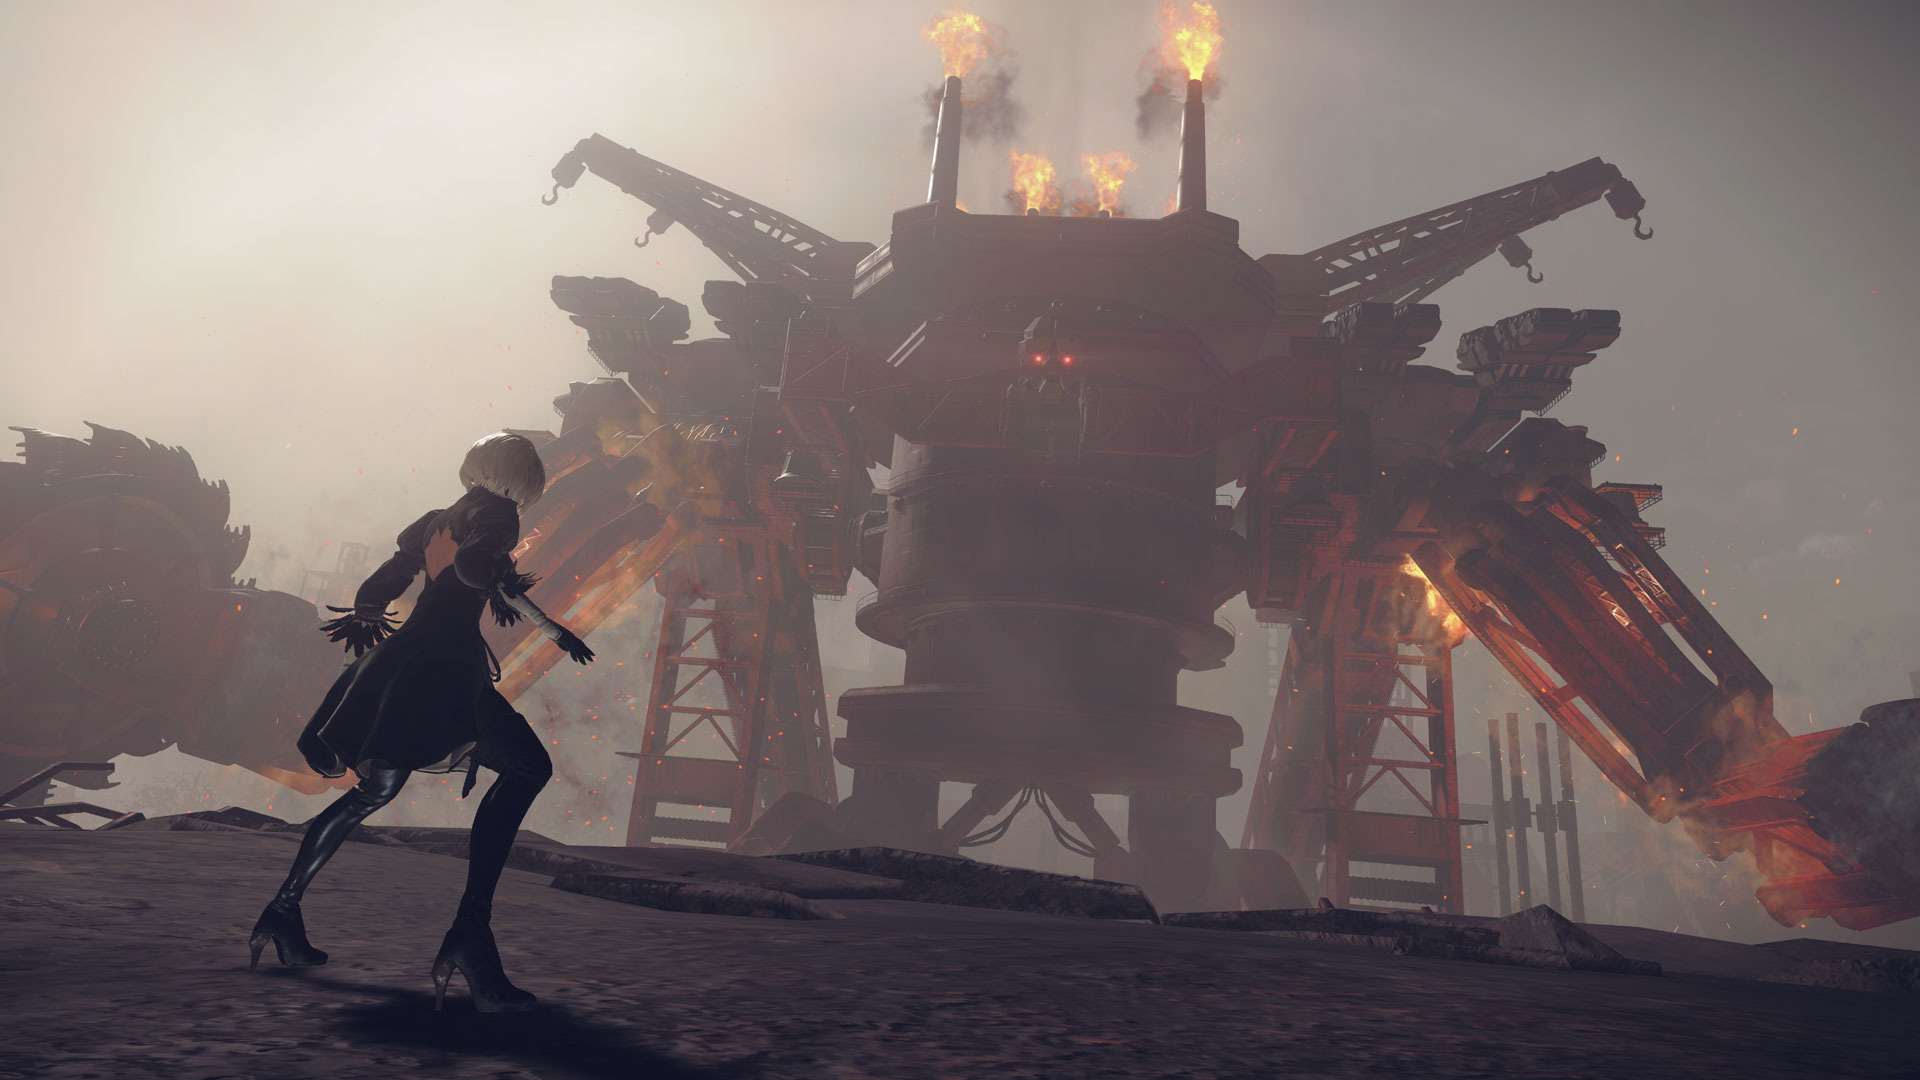 Dwonload Free PC game NieR Automata 2017 https://gamesave.us Plus more then 700 Free PC game Download available